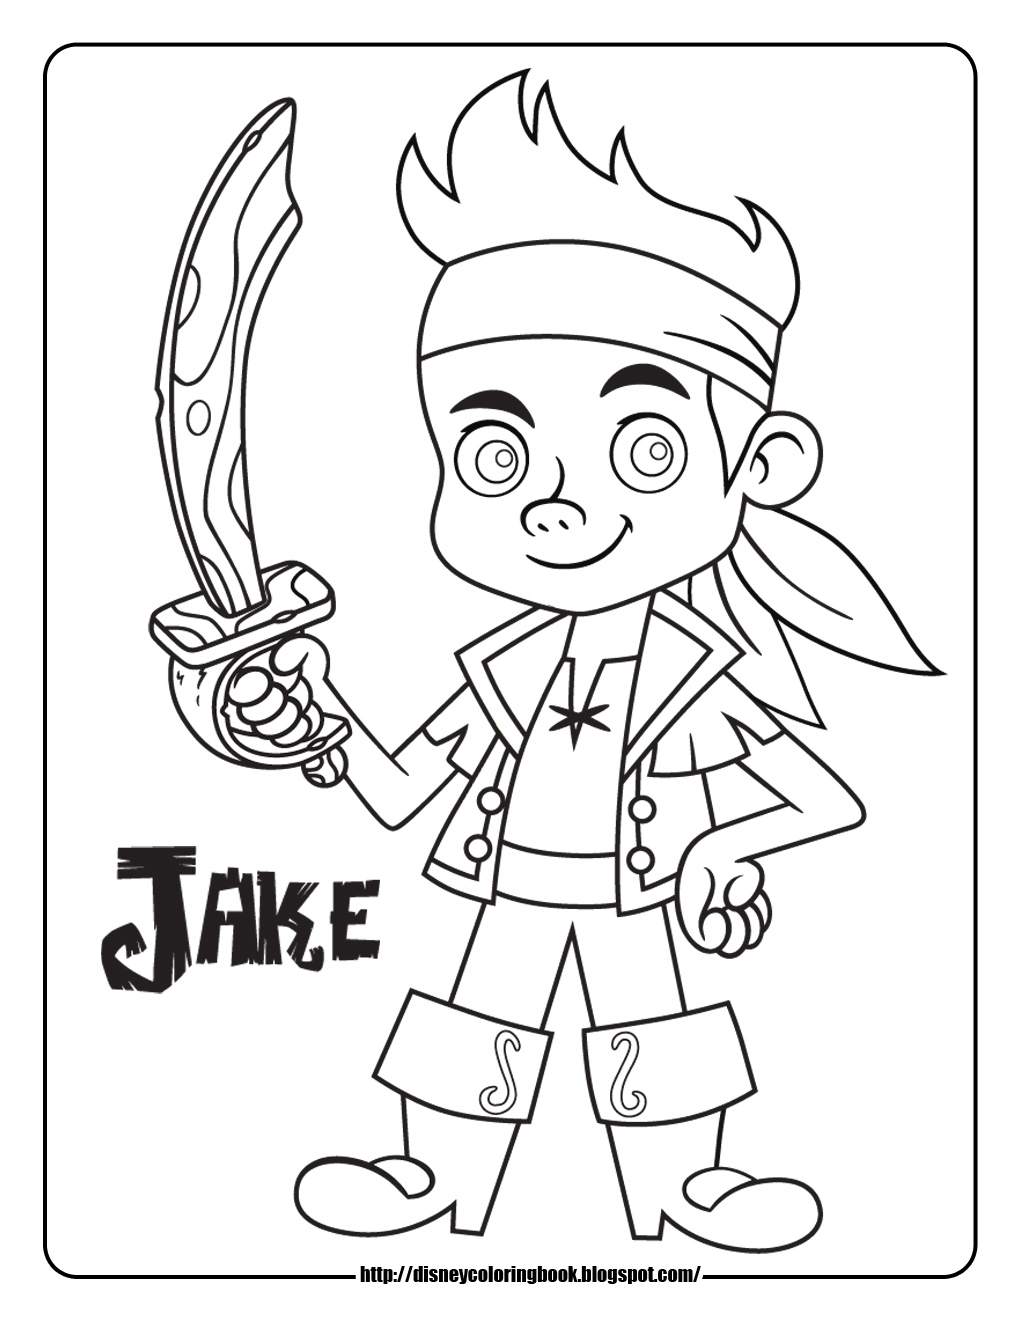 disney pirates coloring pages - photo#1